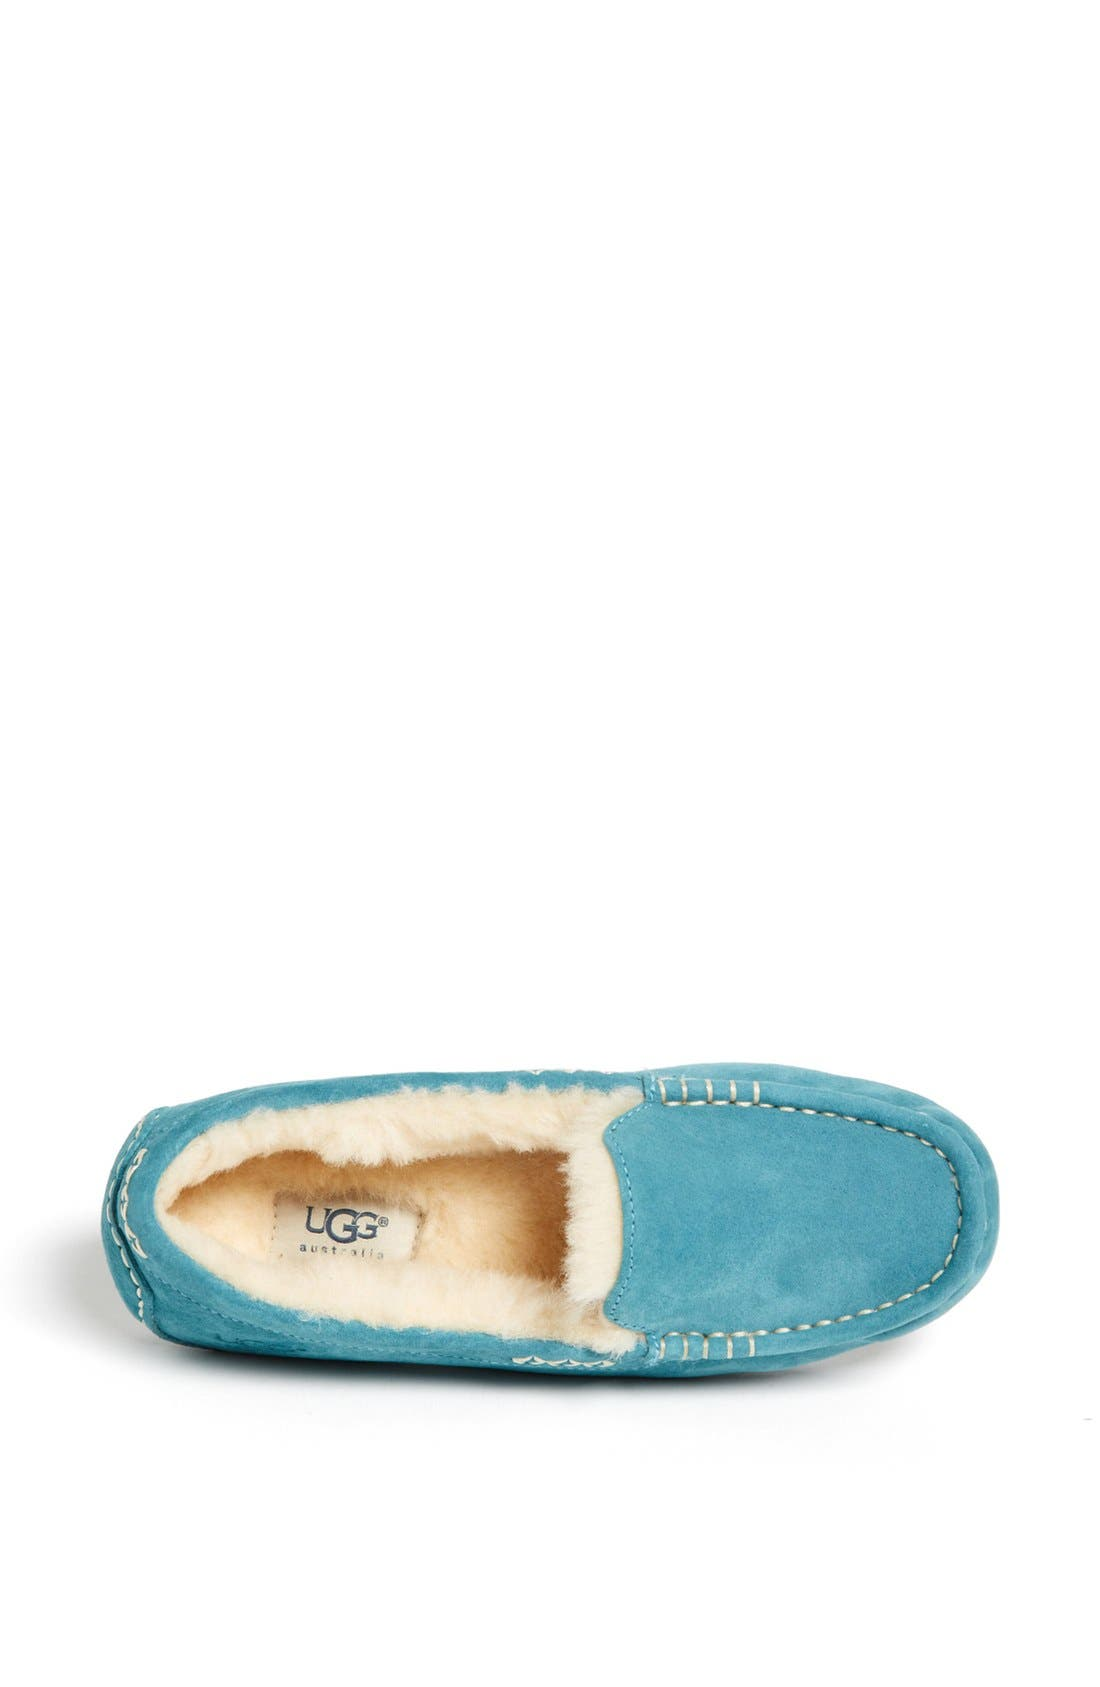 Alternate Image 3  - UGG® 'Ansley' Slipper (Women) (Exclusive Color)